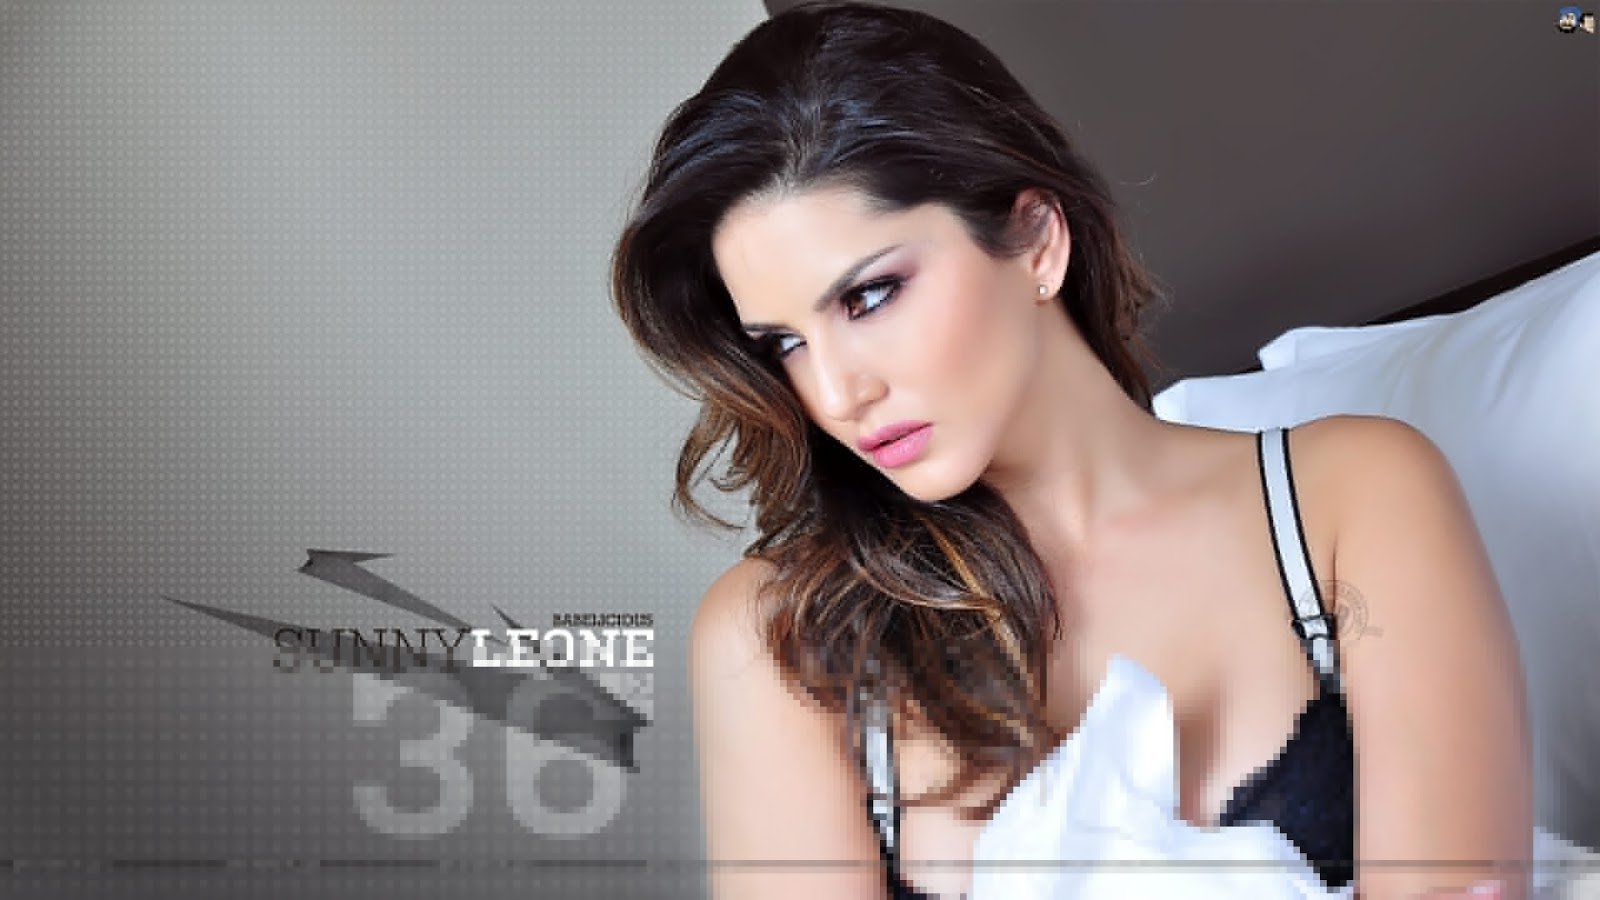 sunny leone hd hot wallpaper - hd wallpapers new | asimbabalinks